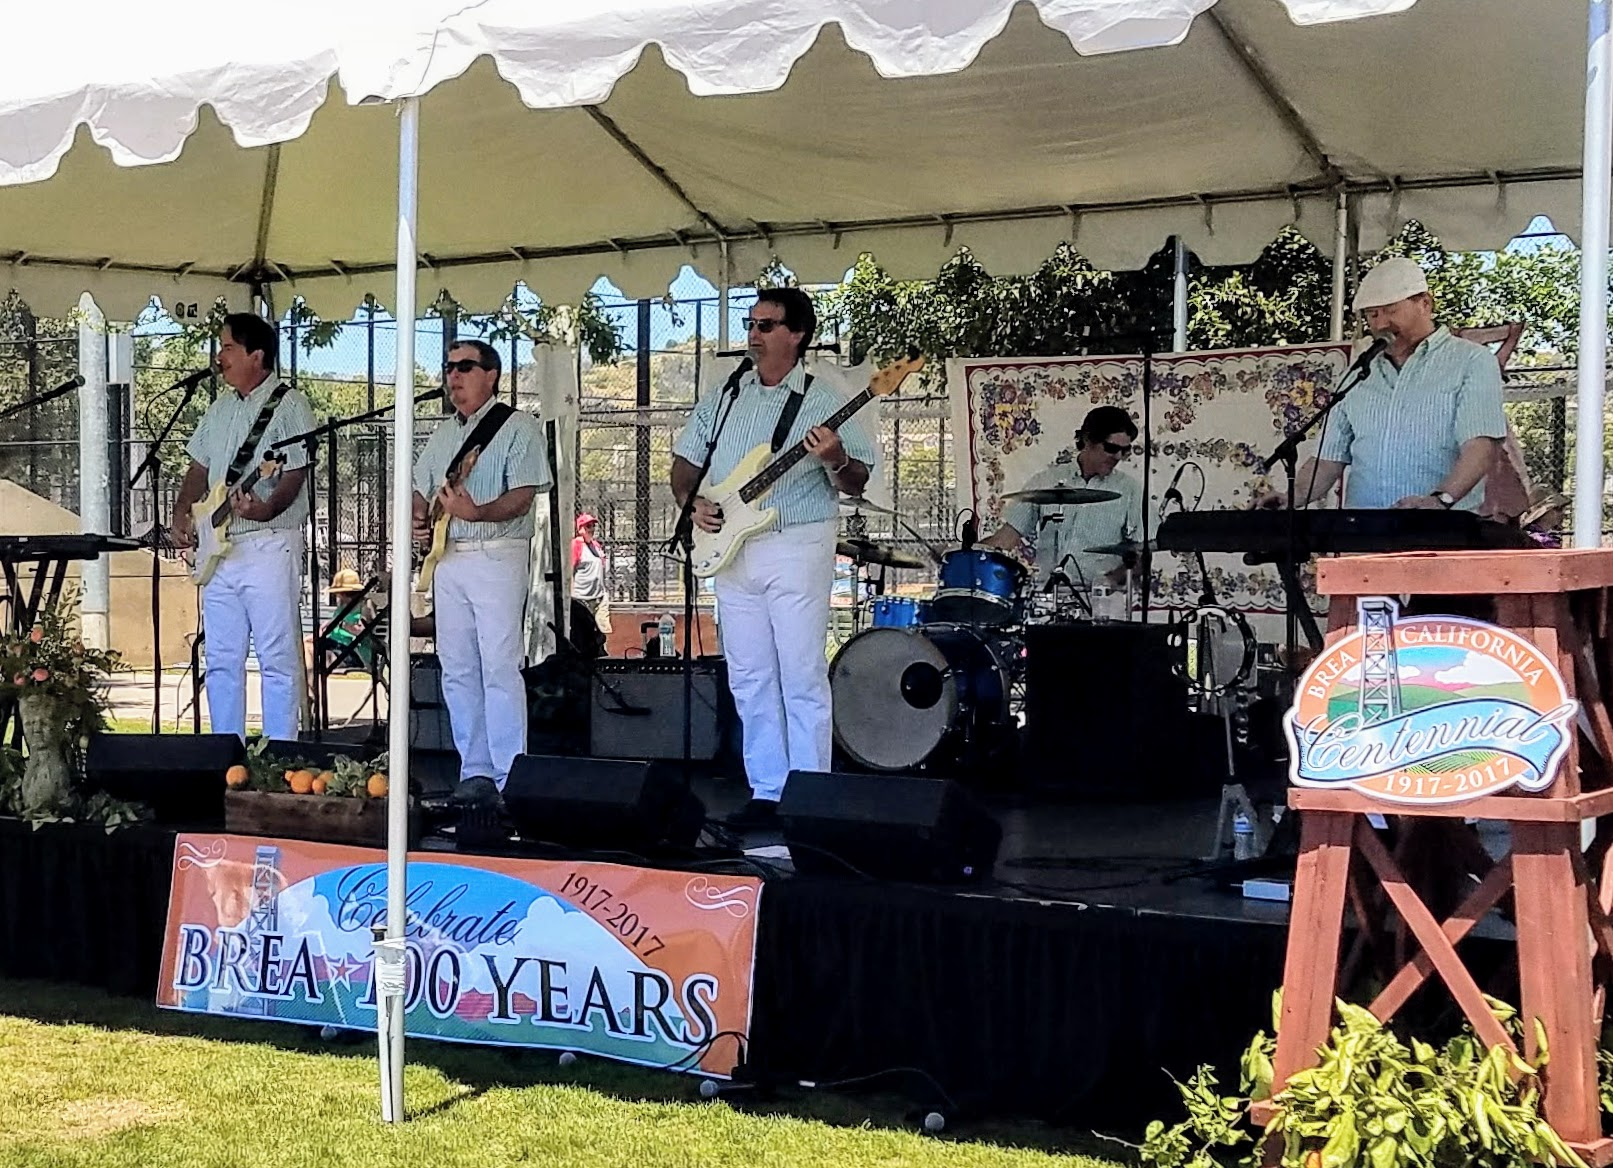 We're waxin' down our surfboards, we can't wait 'til June! (Note the classic mint & white pinstripe shirts on this Beach Boys cover band.) (Photo Courtesy of Dena Sommer)